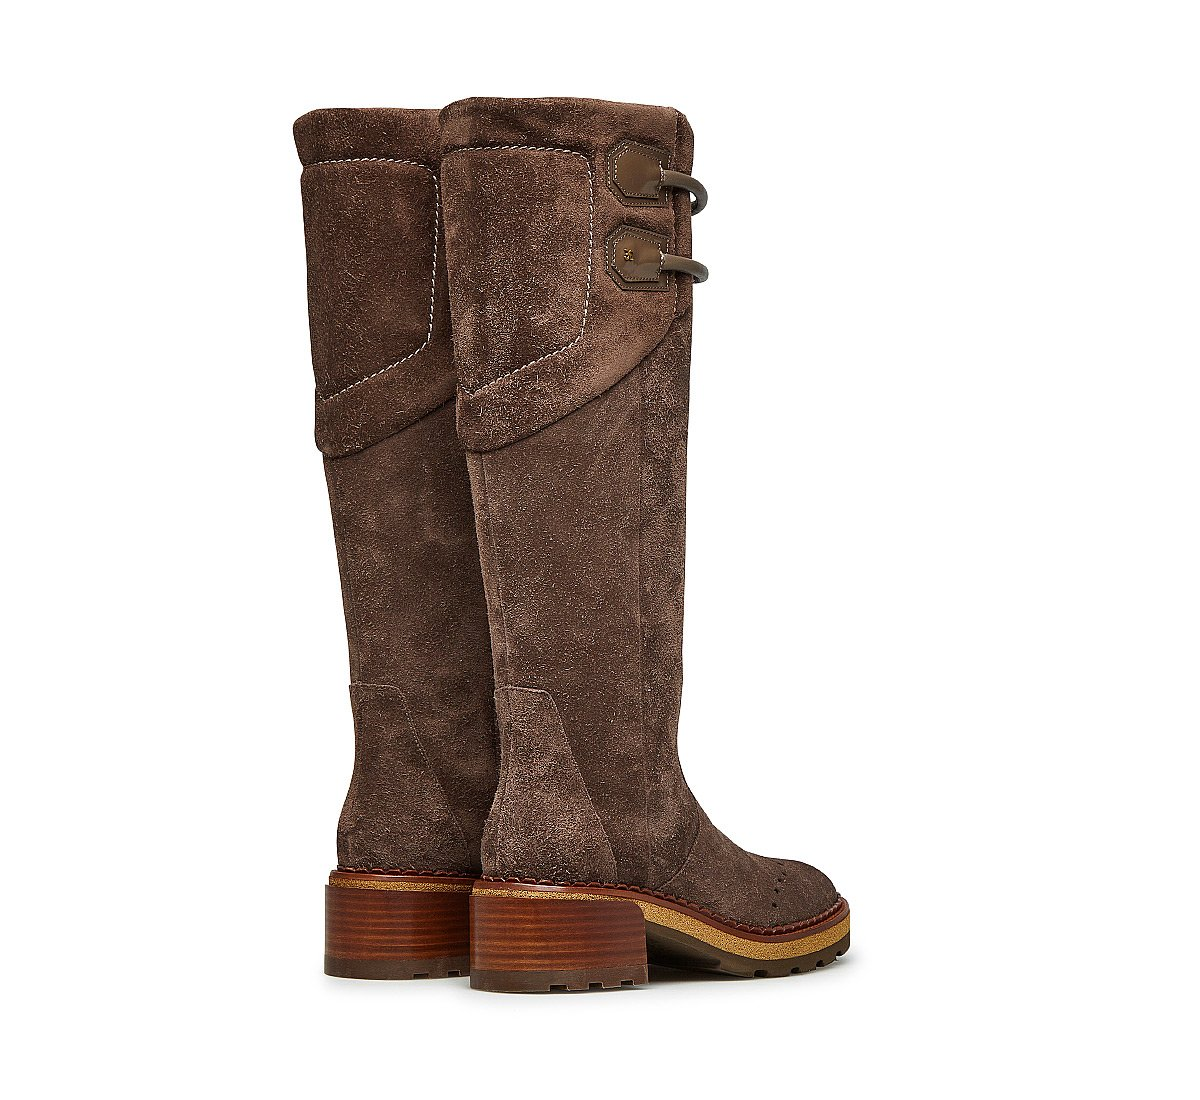 Fine suede high boots